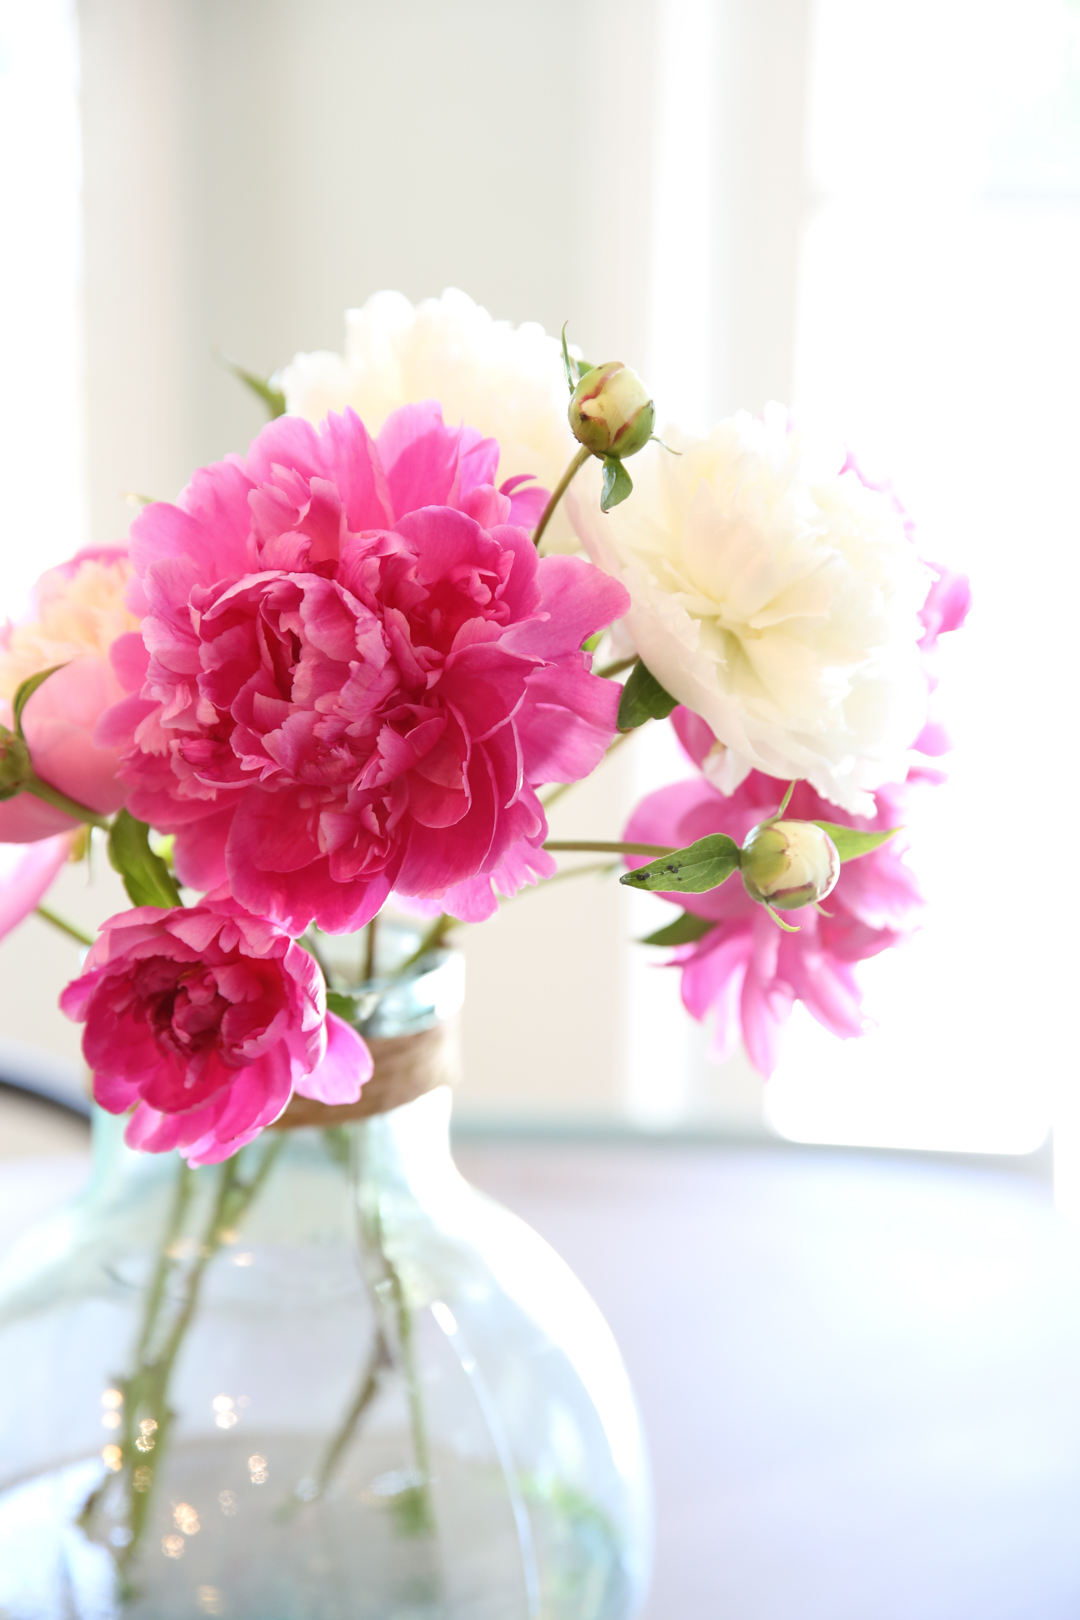 Fully Bloomed Peonies